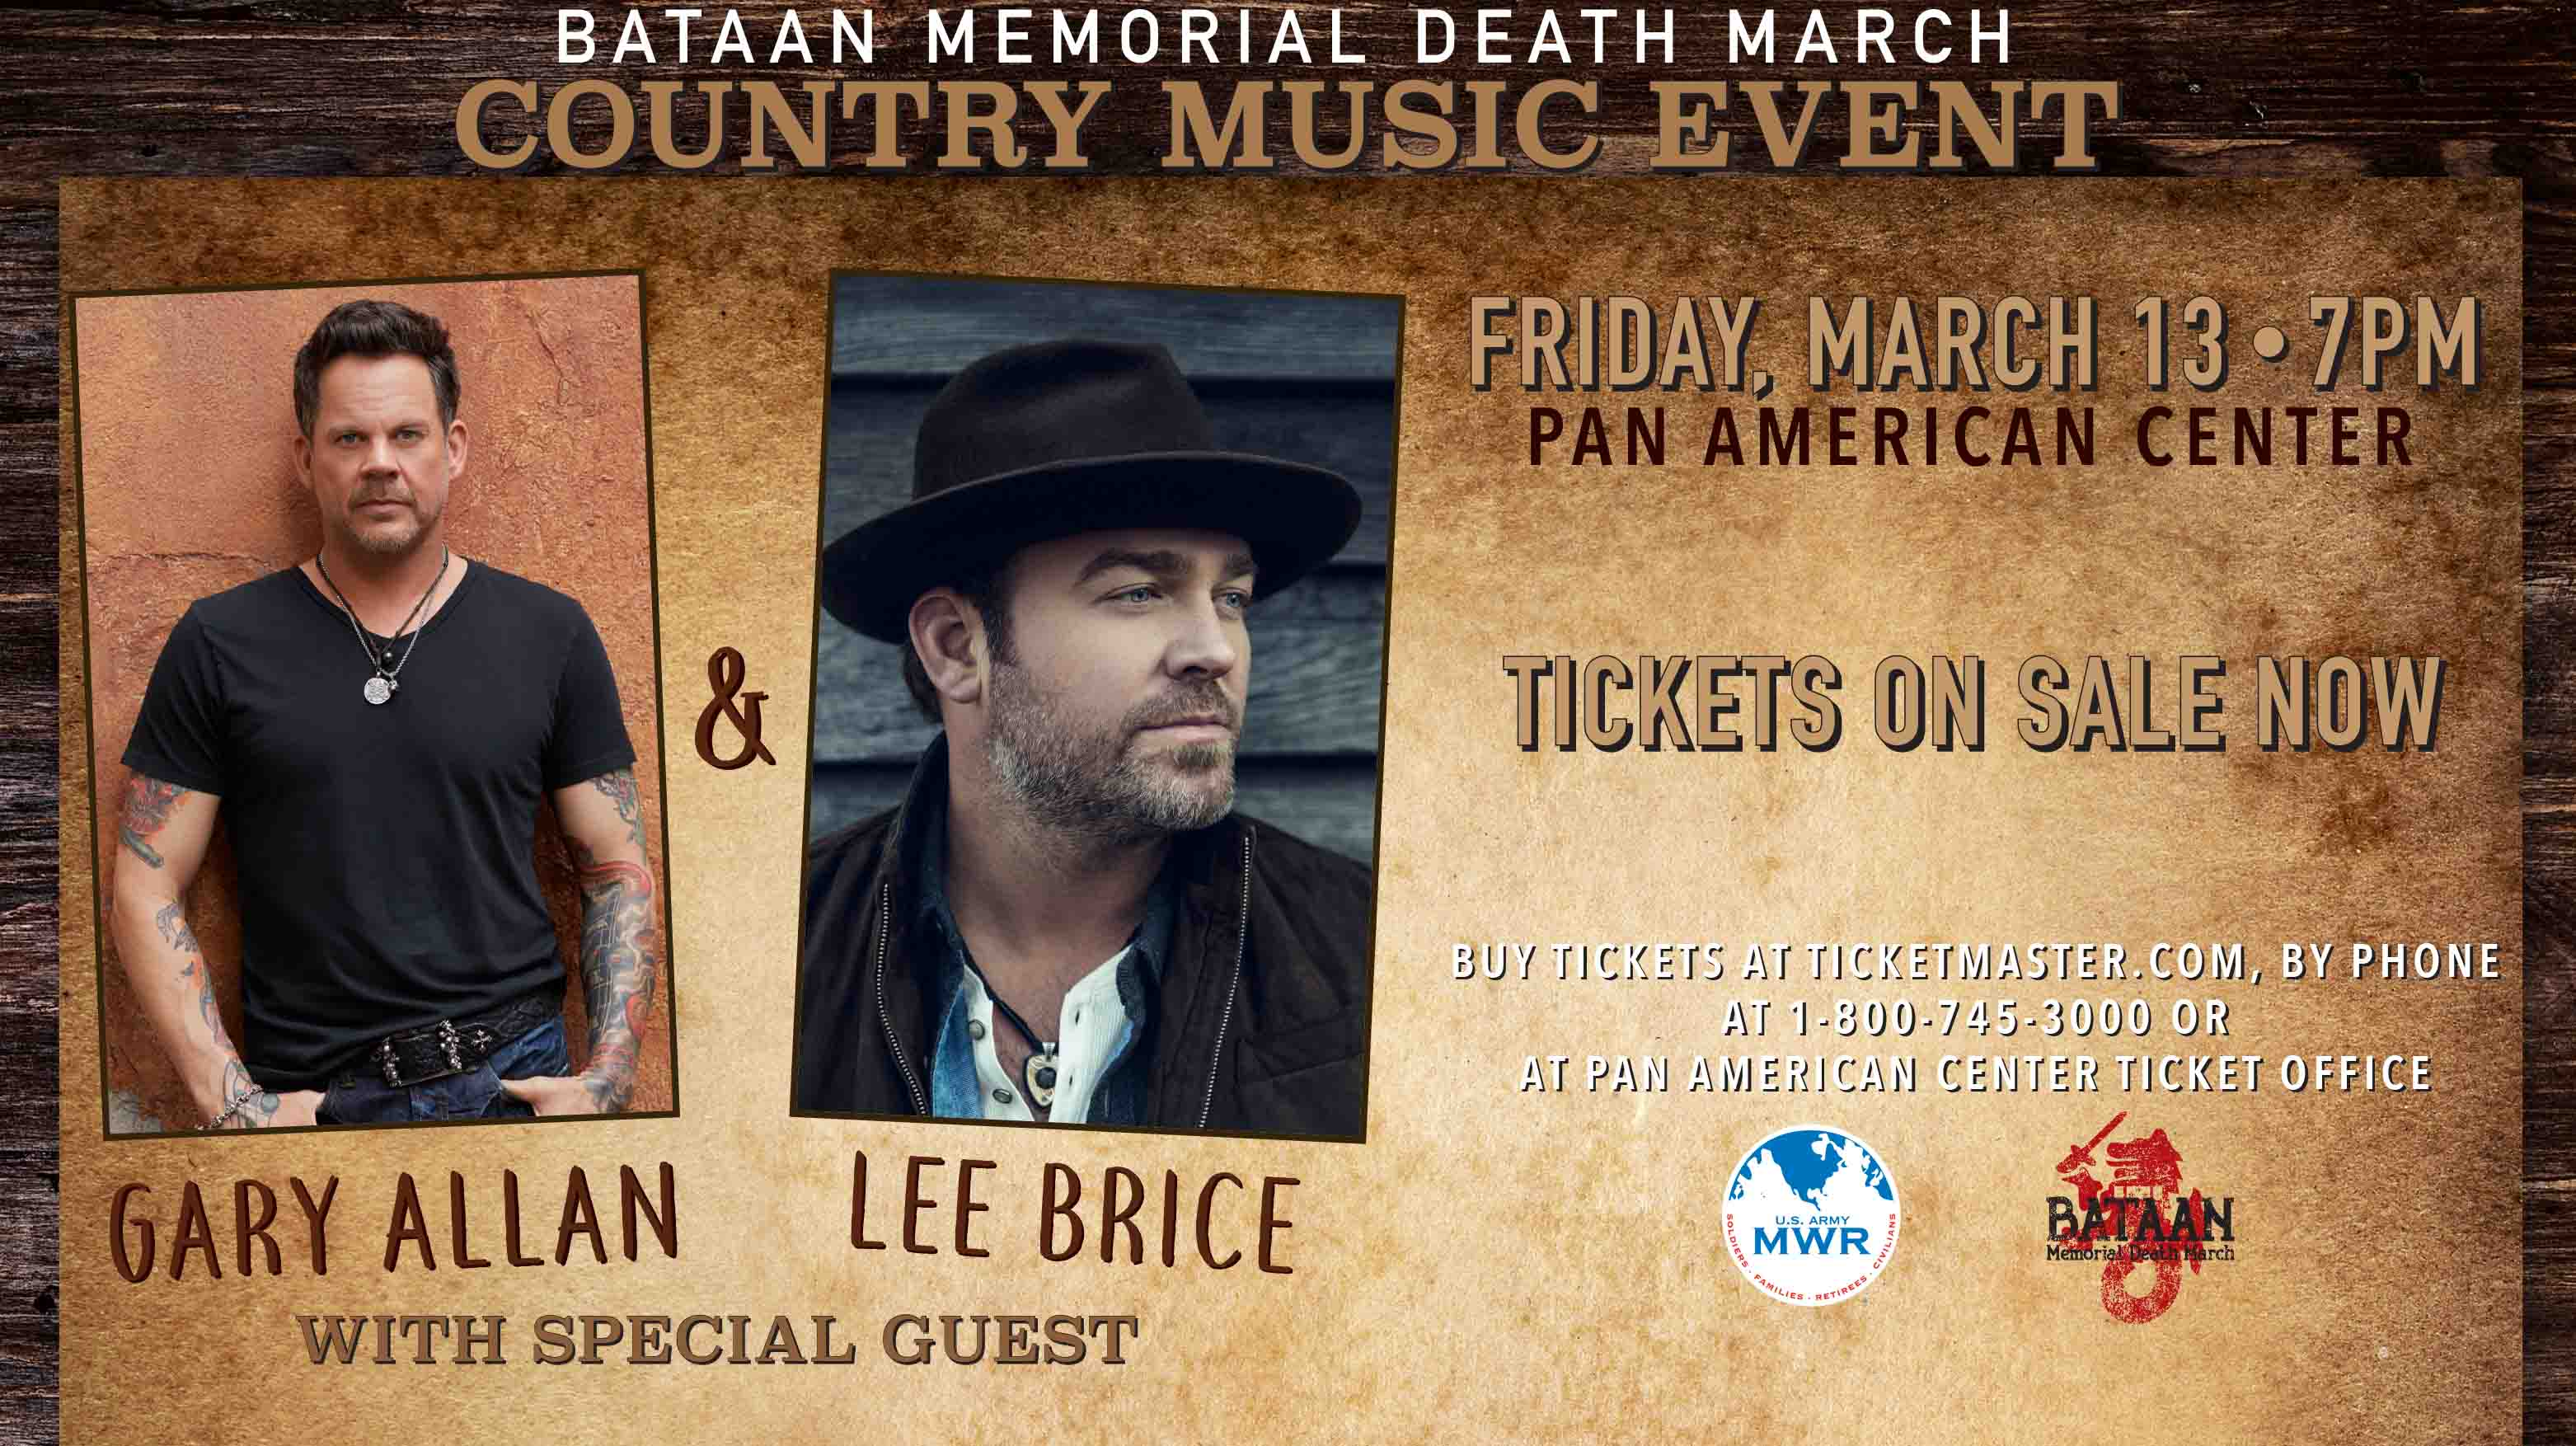 Bataan Memorial Death March Country Concert